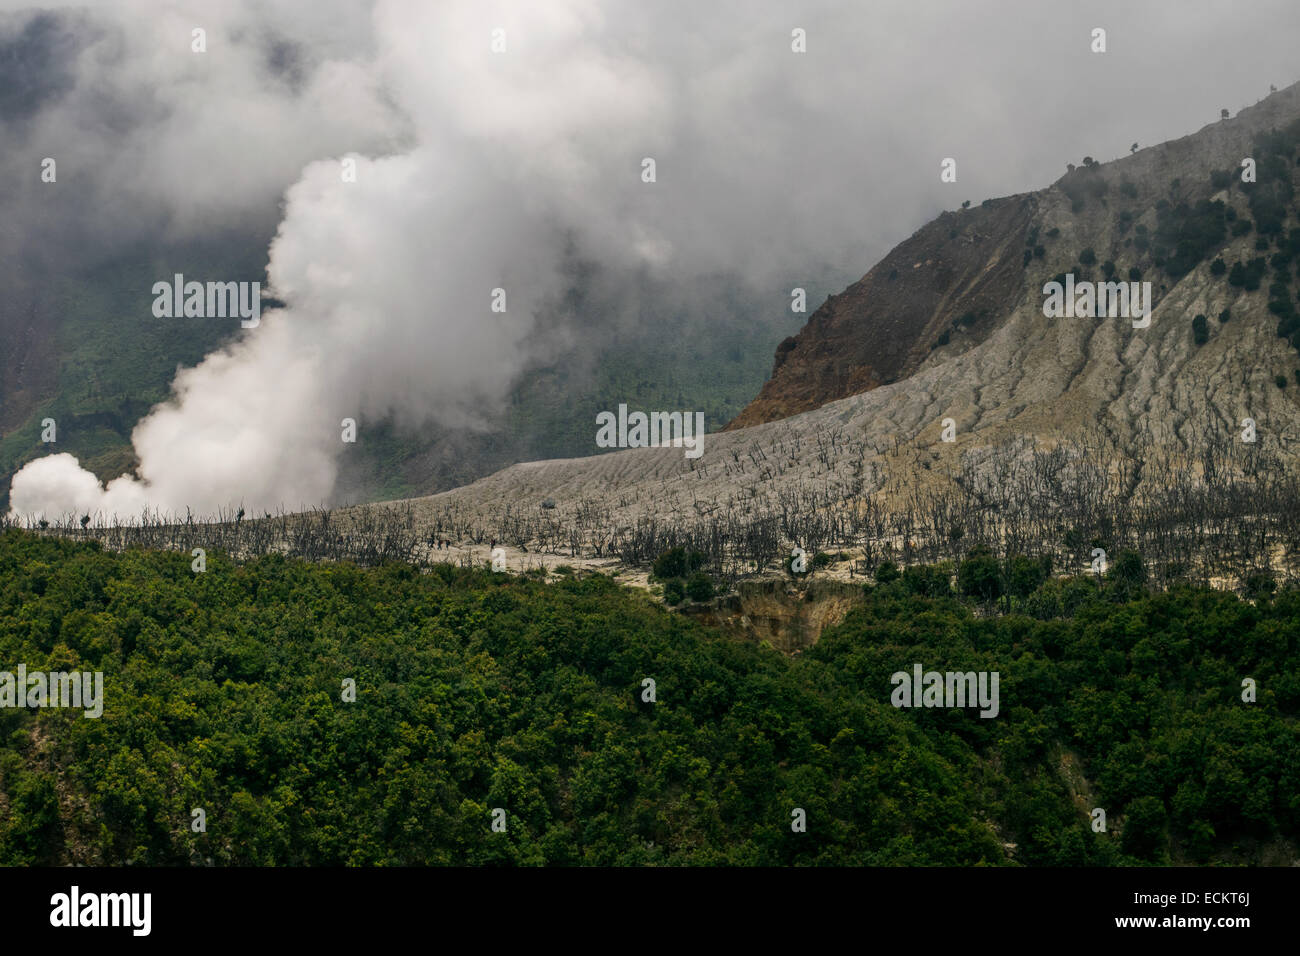 The crater and partially dead forest of Mount Papandayan seen from distance. - Stock Image